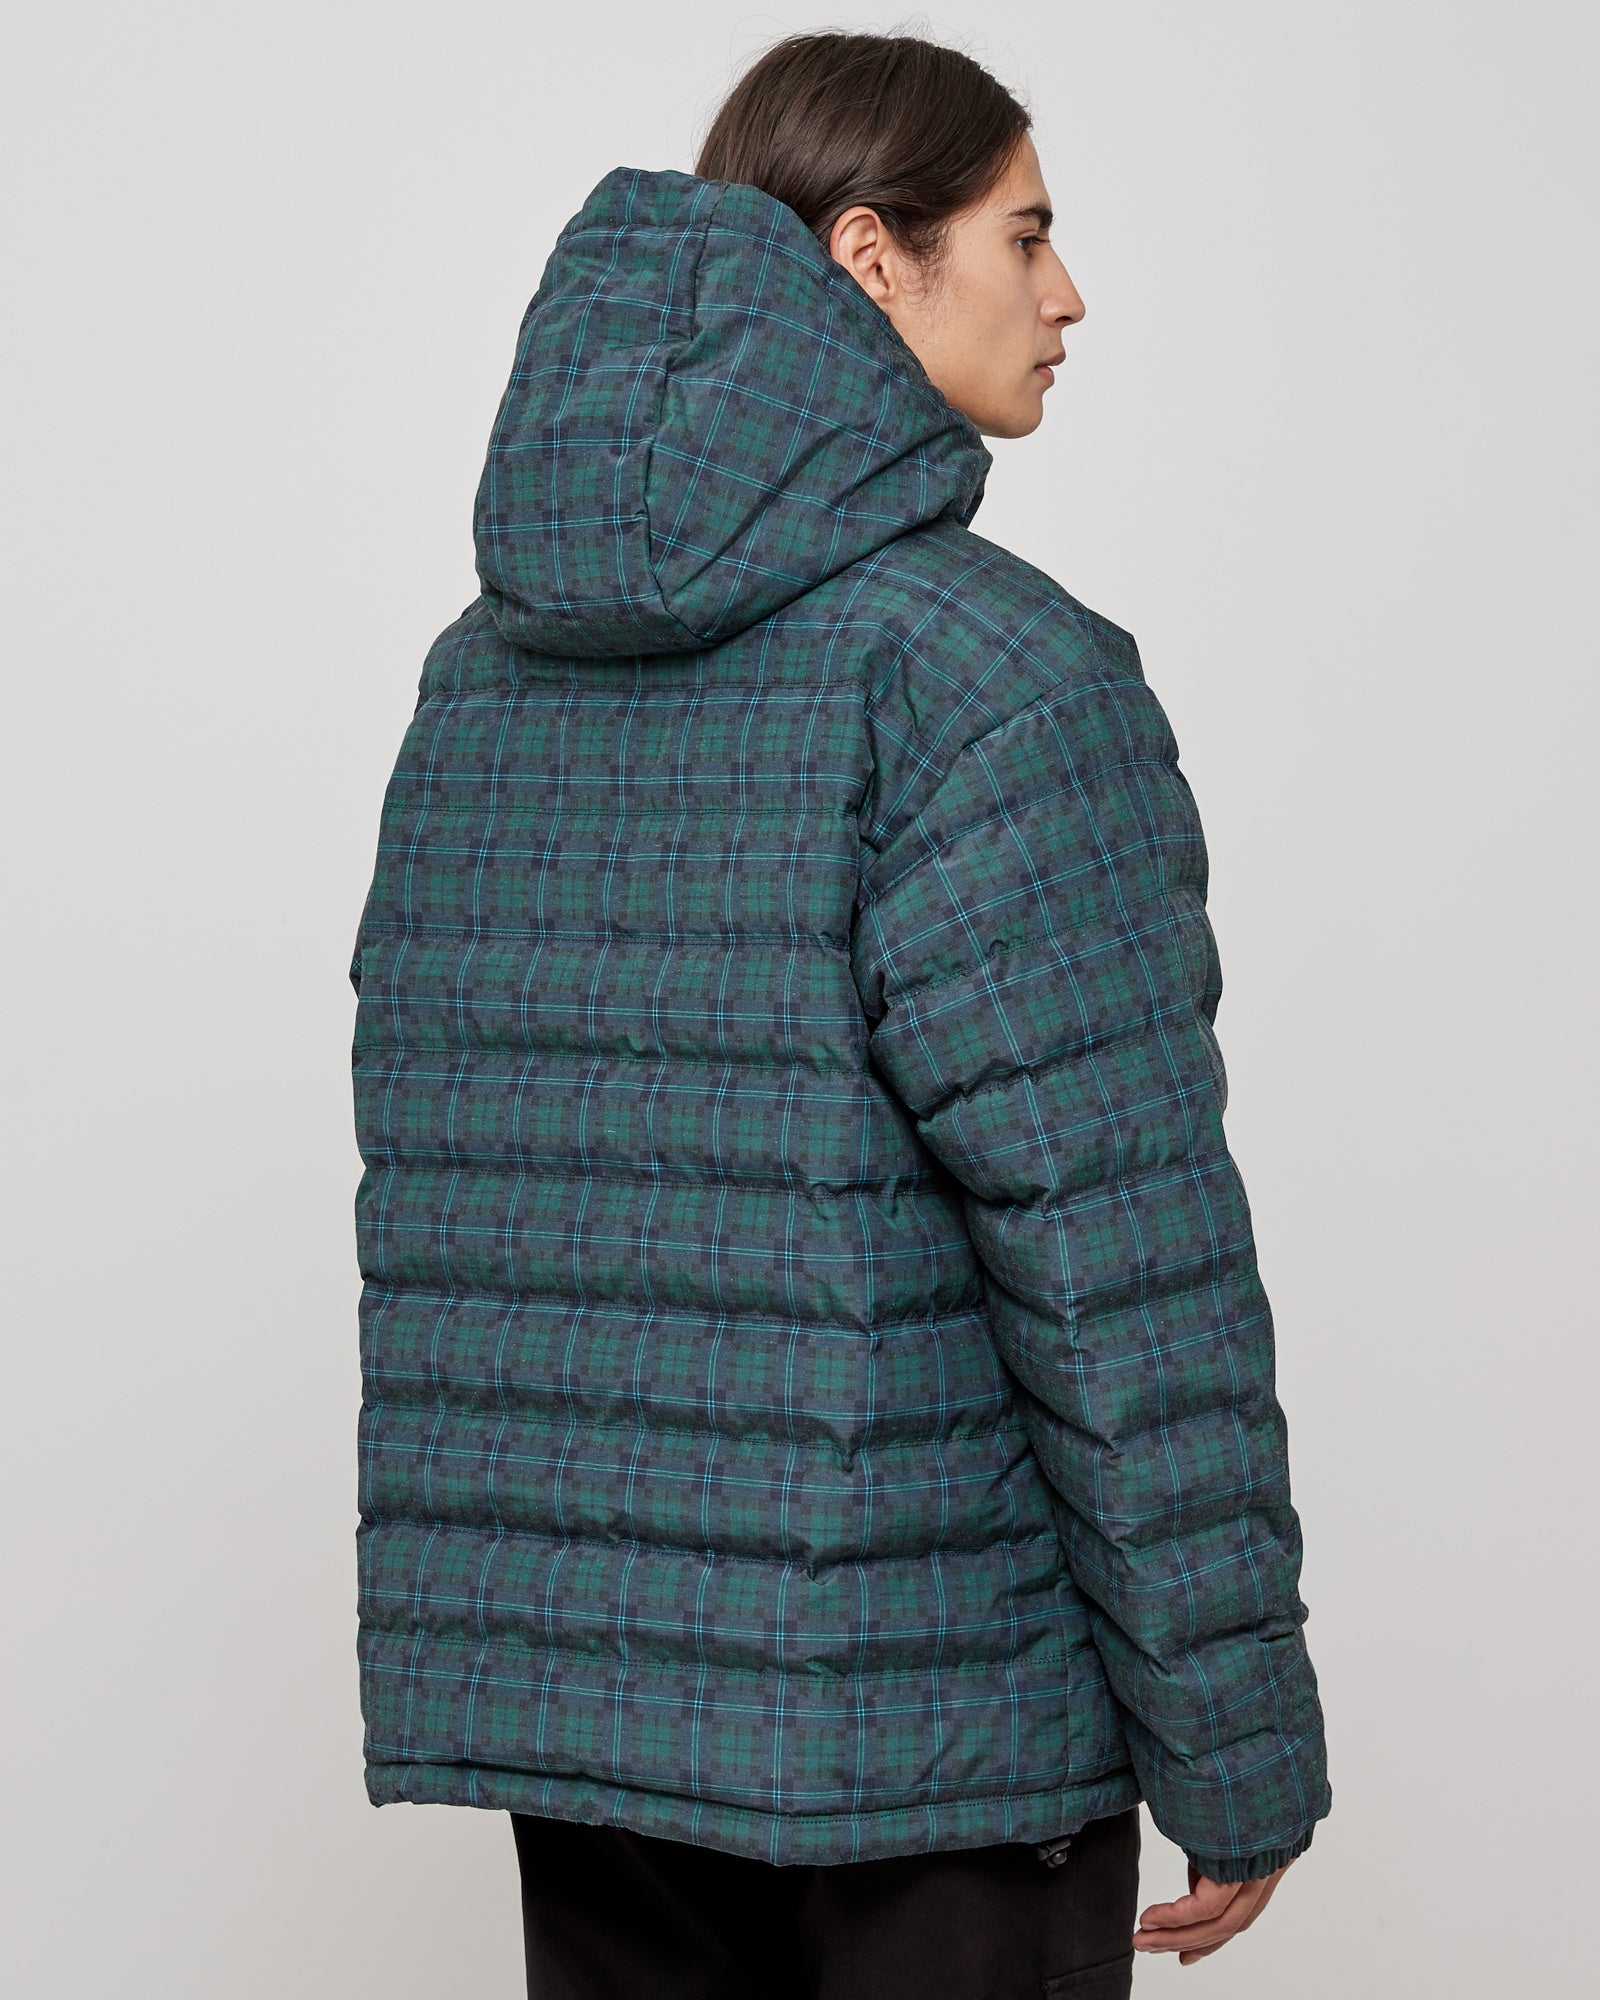 Plaid Tech Pullover in Green Plaid